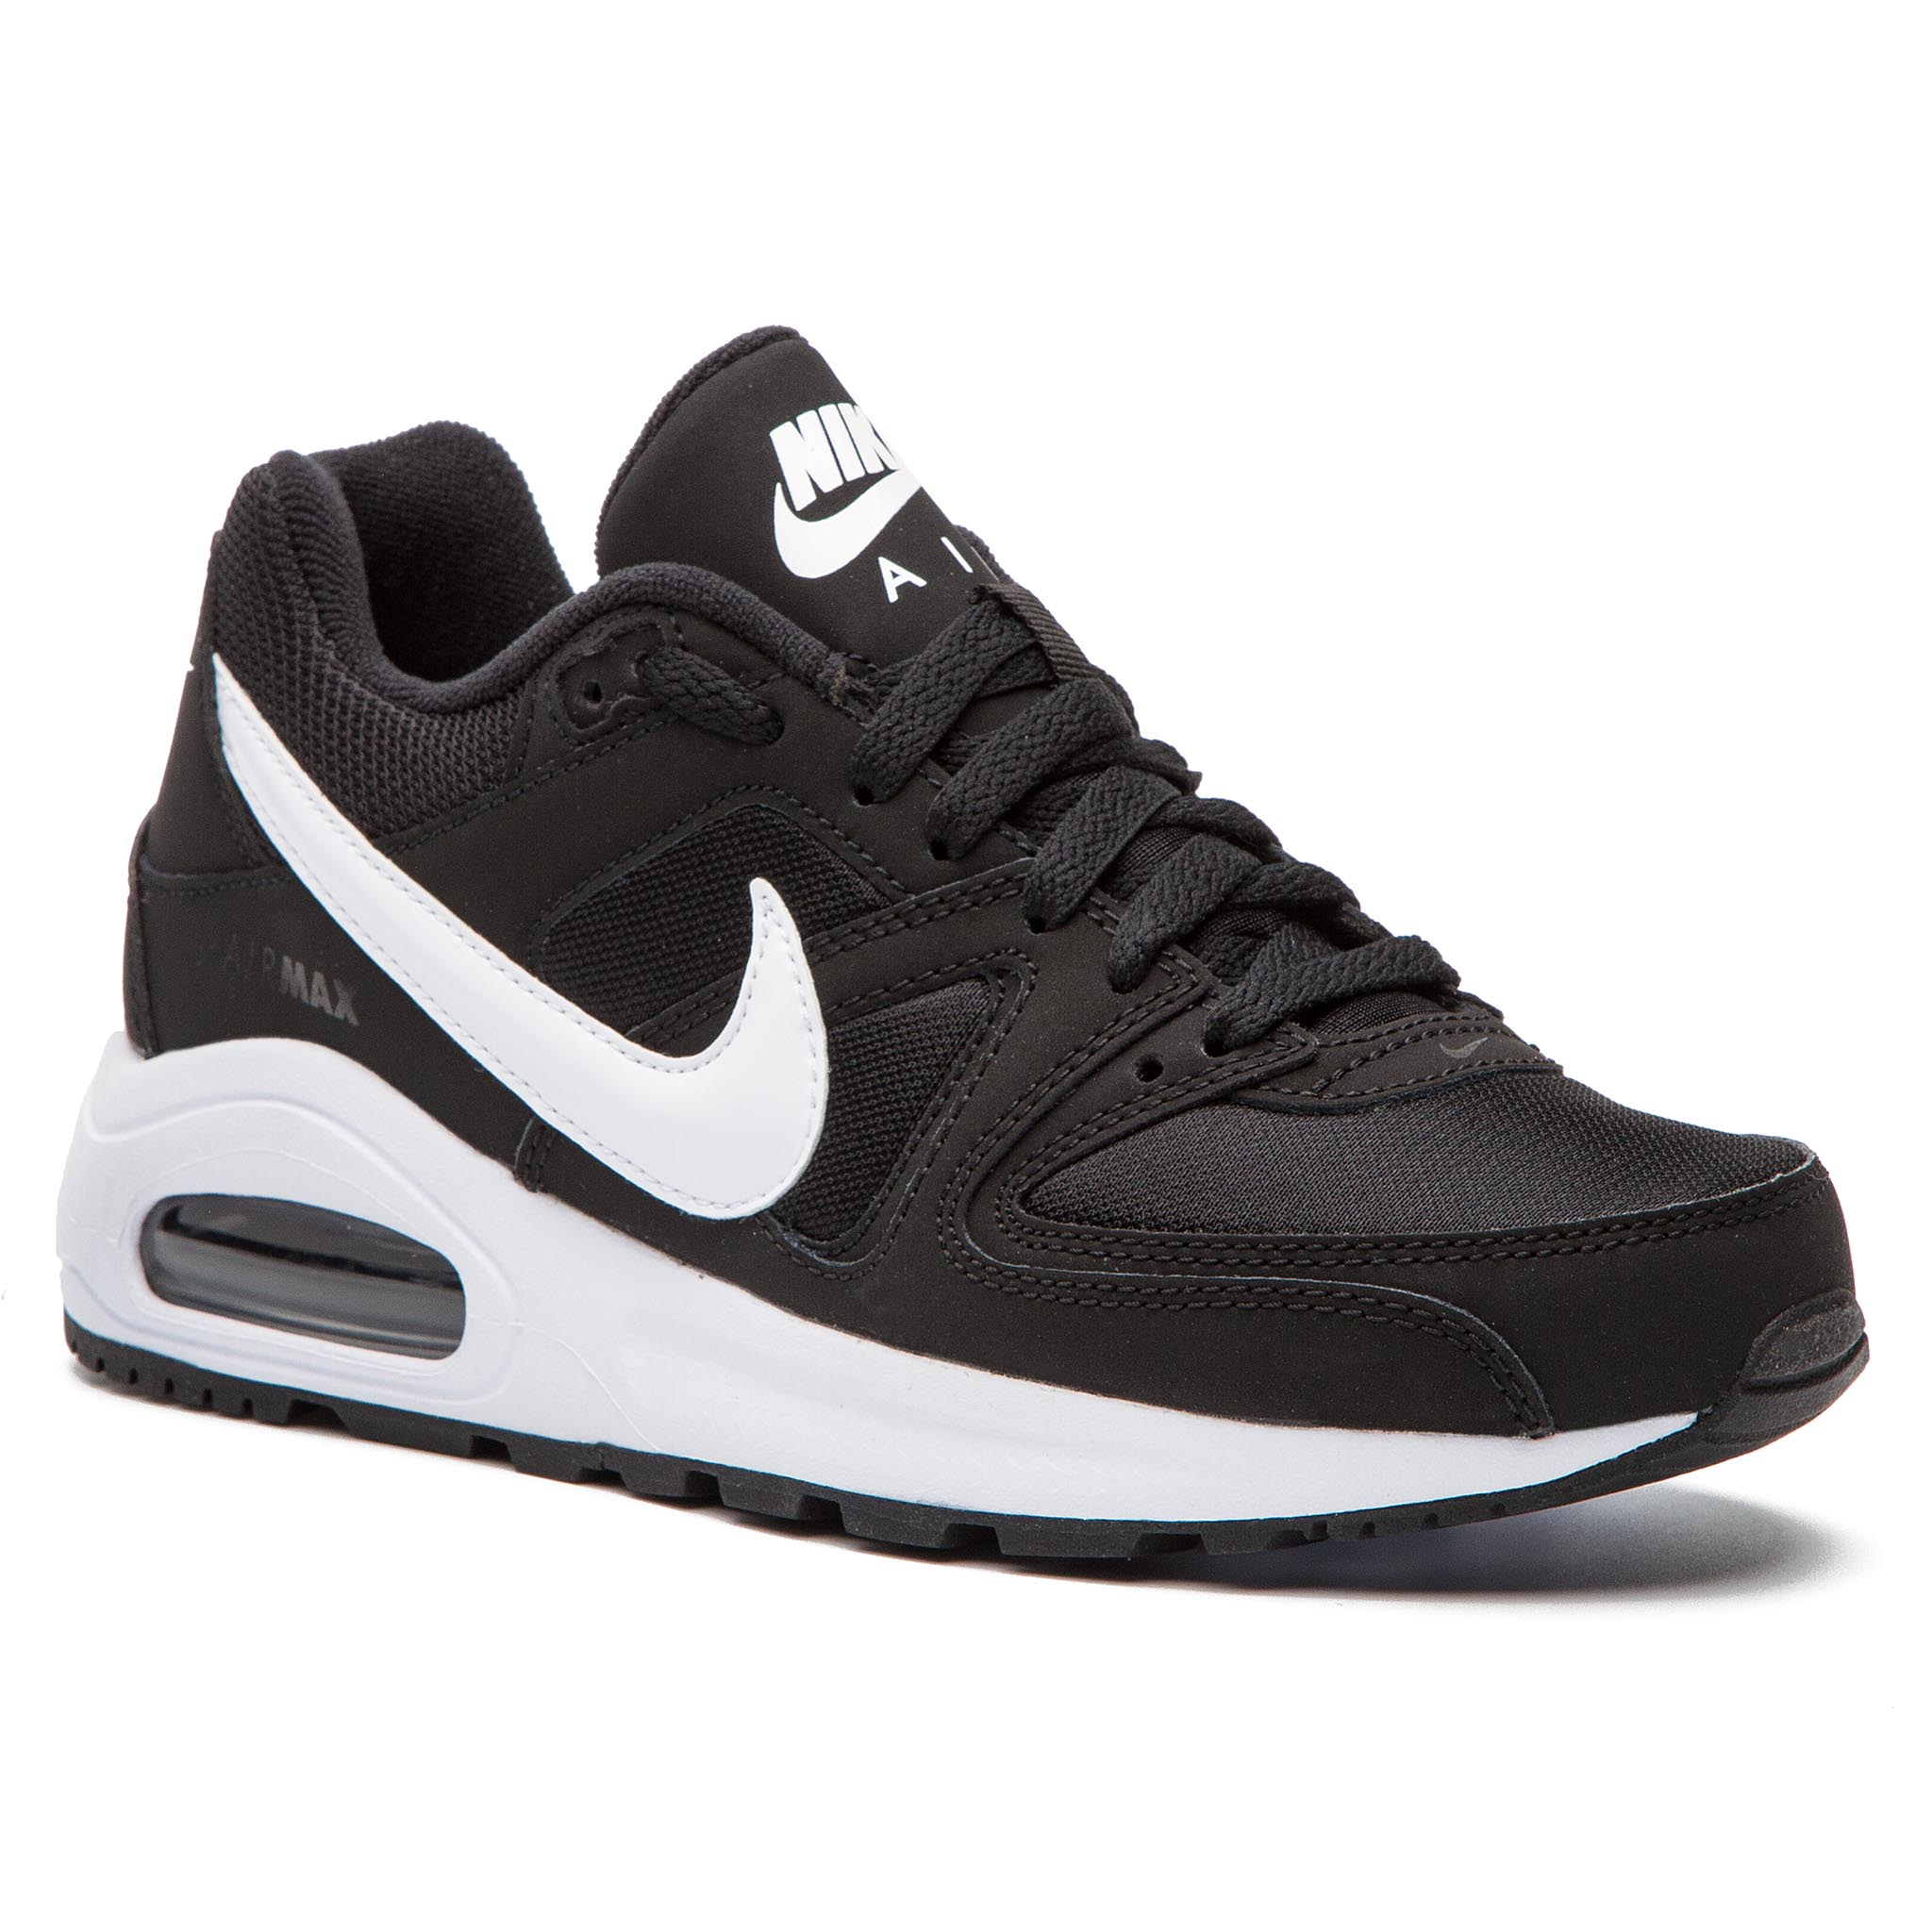 Topánky NIKE - Air Max Command Flex (GS) 844346 011 Black/White/White